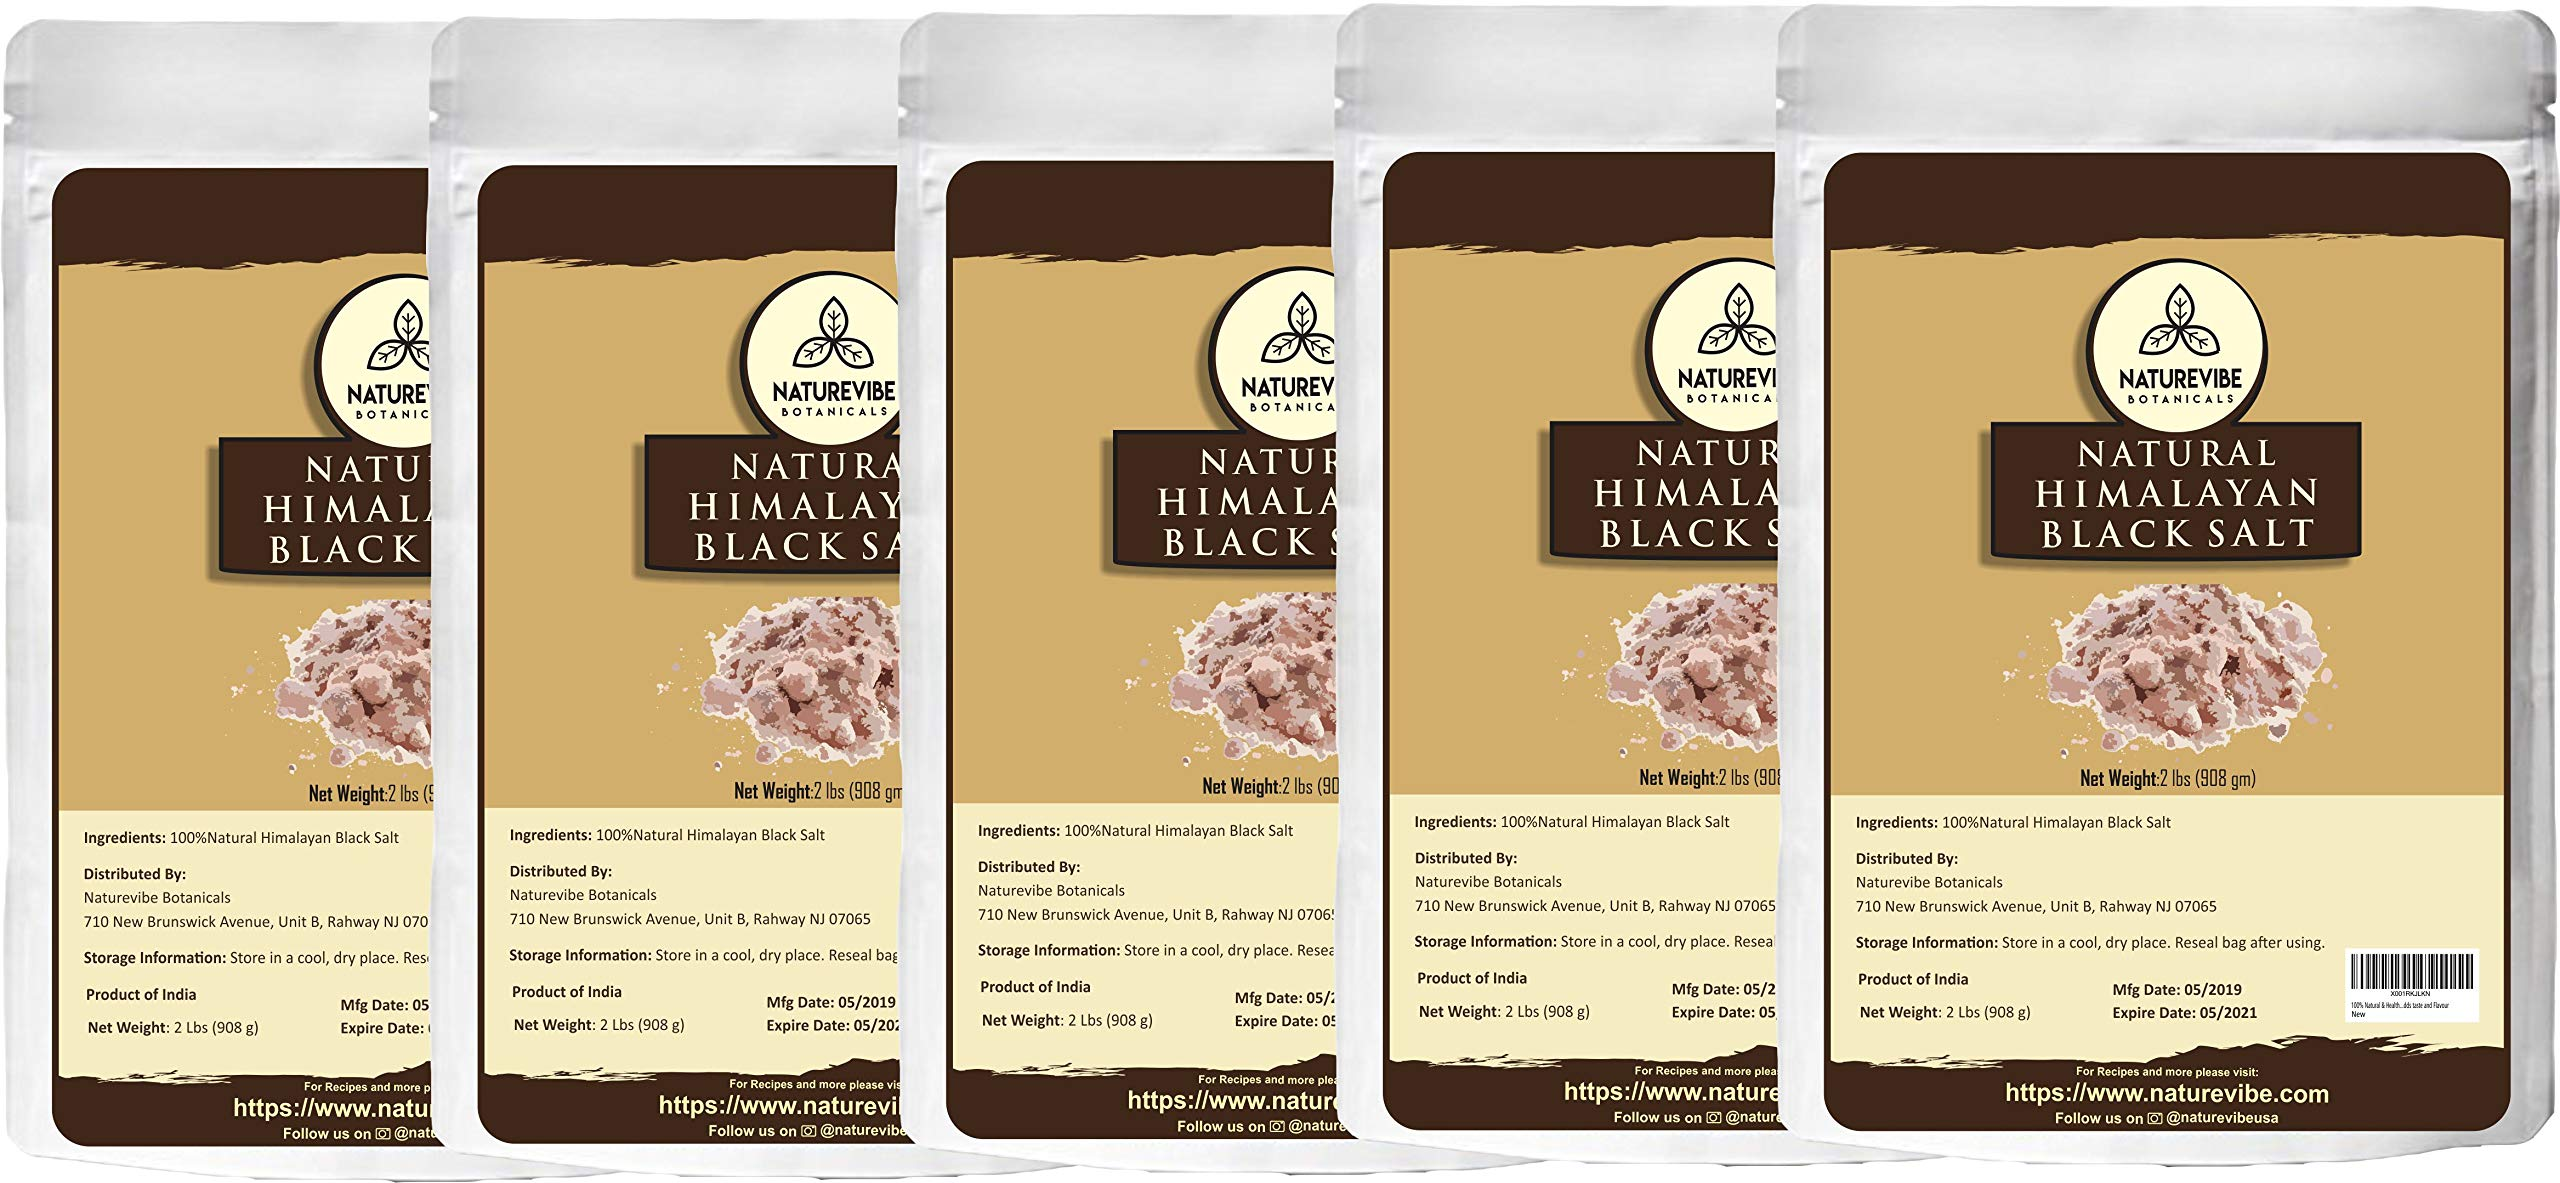 Naturevibe Botanicals 100% Natural Himalayan Black Salt -10lbs (5 Pack of 2lbs Each), Gluten-Free & Non-GMO (Fine - Cooking Size)   Adds taste and Flavour [Packaging may vary] by Naturevibe Botanicals